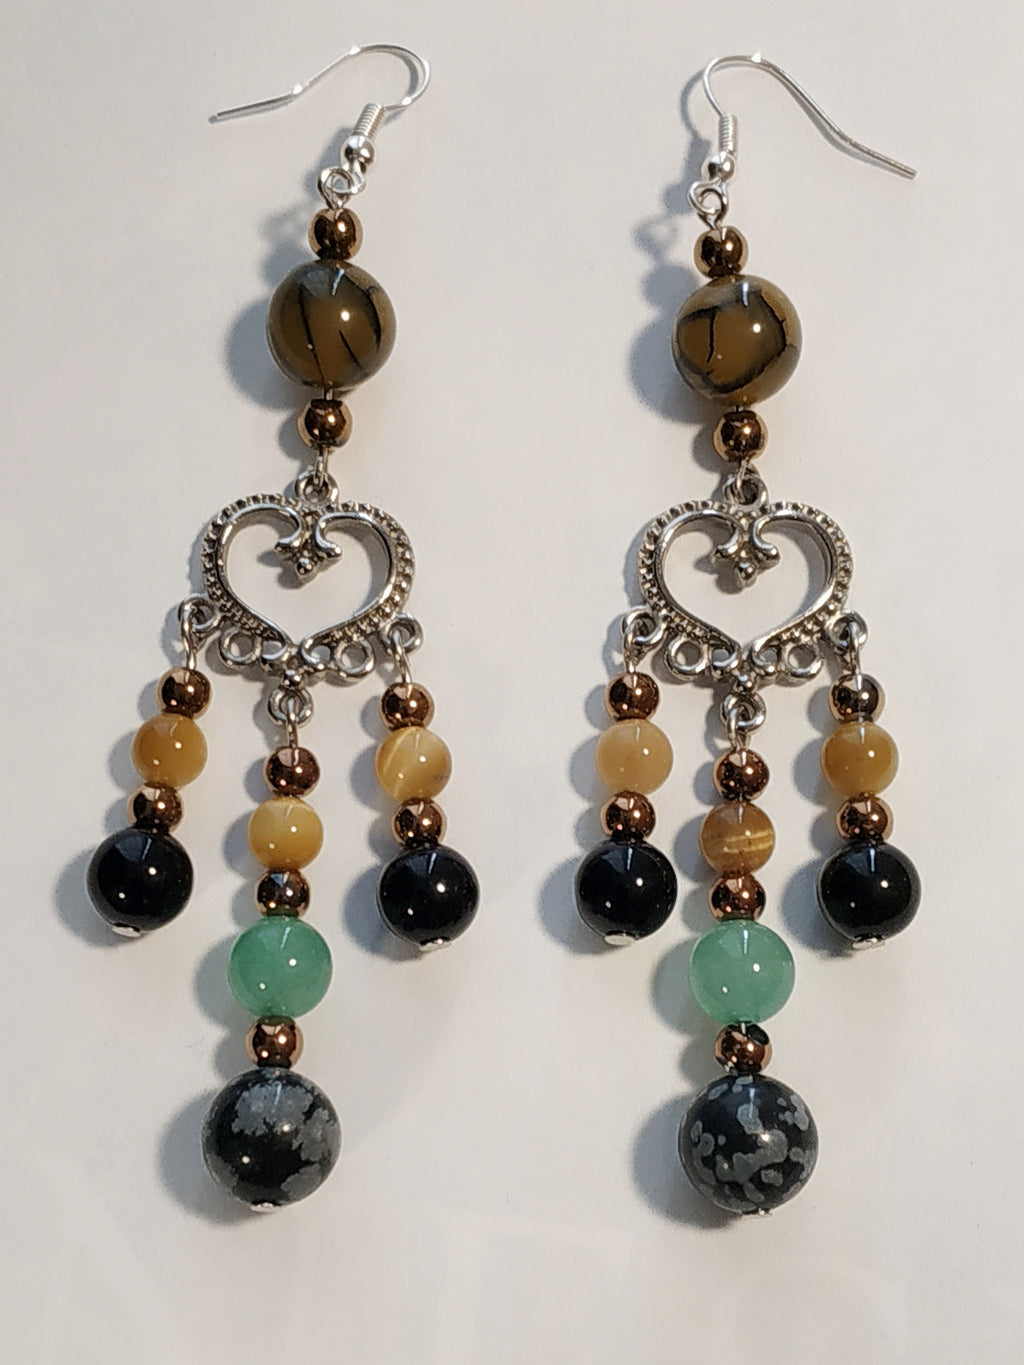 https://josefacreations.com/products/boucles-doreilles-en-chandelier-collection-osez-josephine-1.jpg